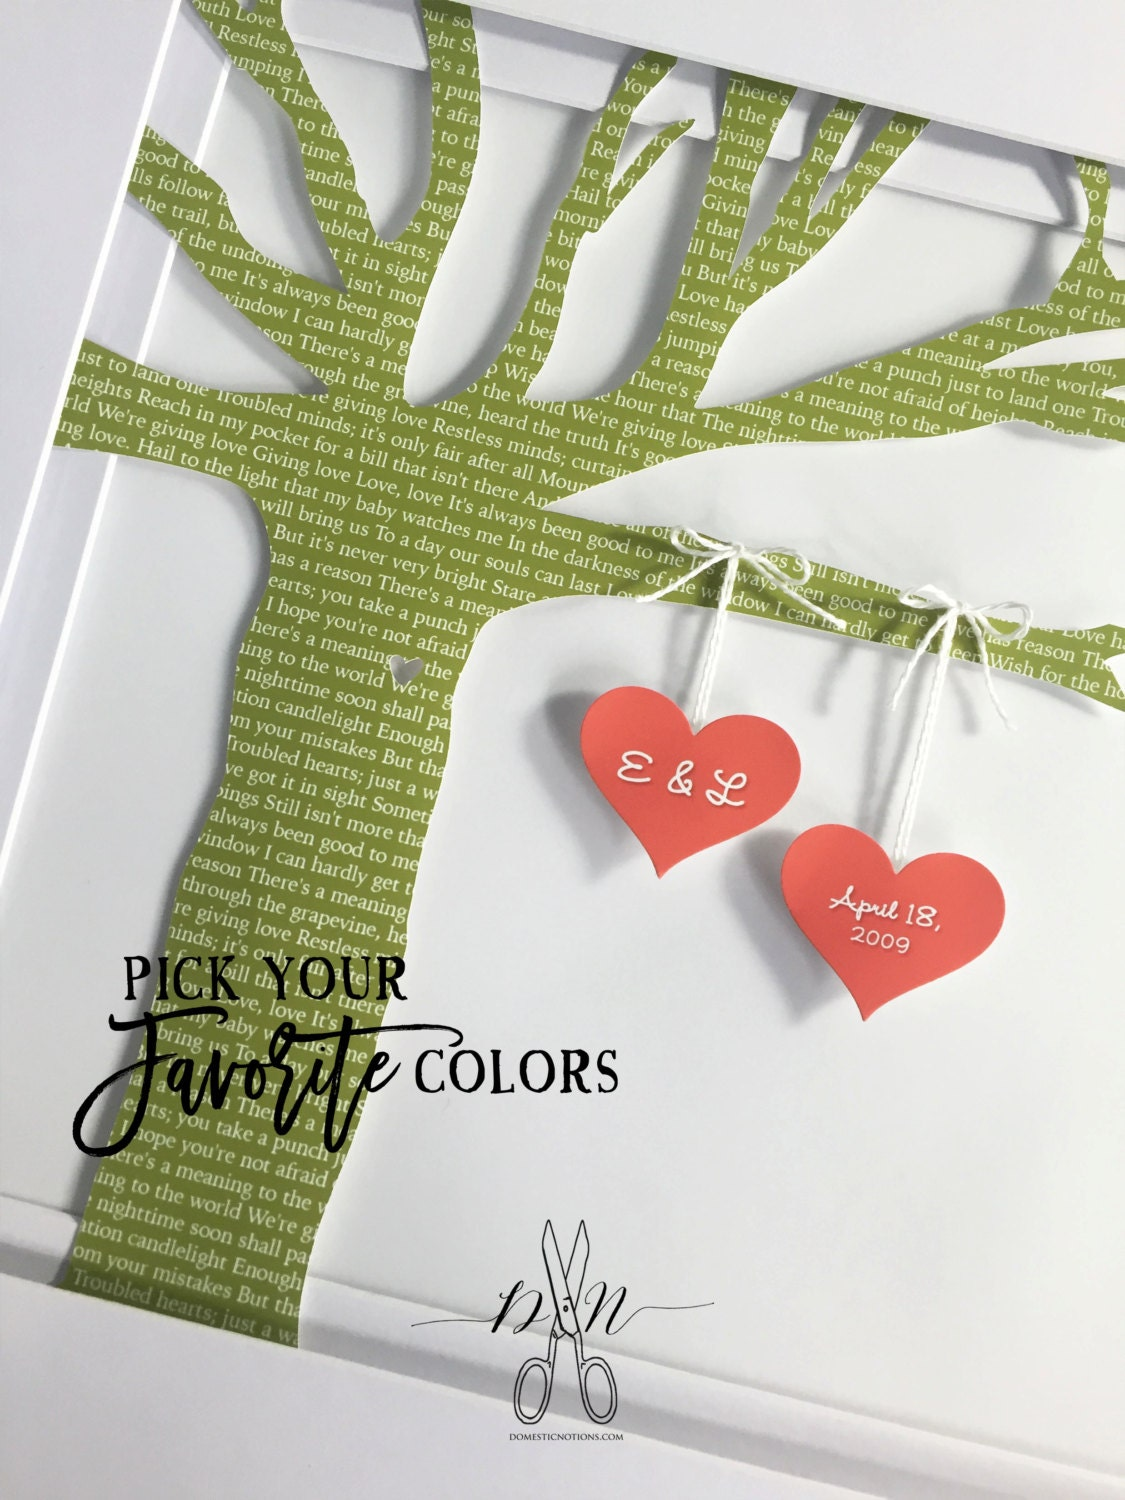 Unique Personalized Wedding Gifts Couple : Wedding Gift for Couple Unique Wedding Gift Idea